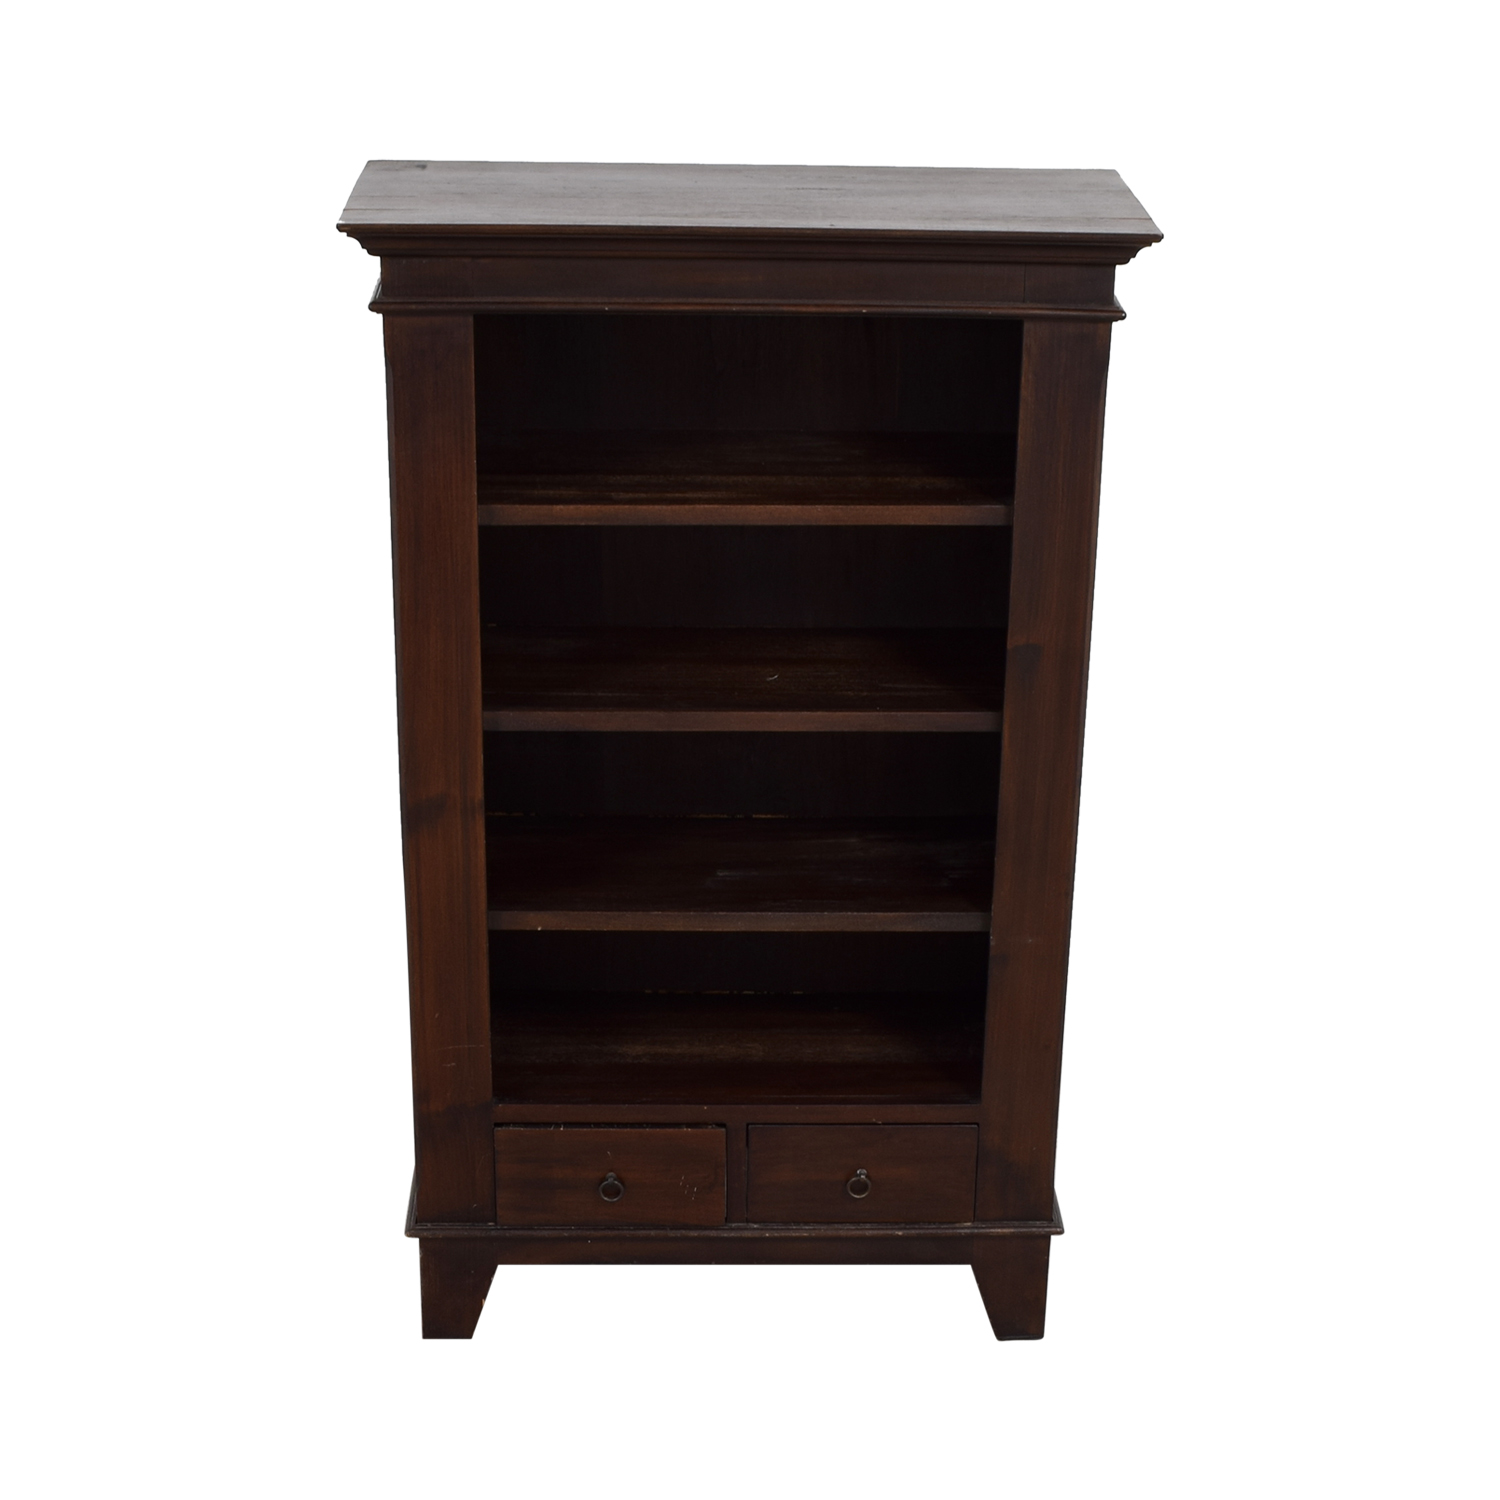 buy Crate & Barrel Two-Drawer Wood Book Shelf Crate & Barrel